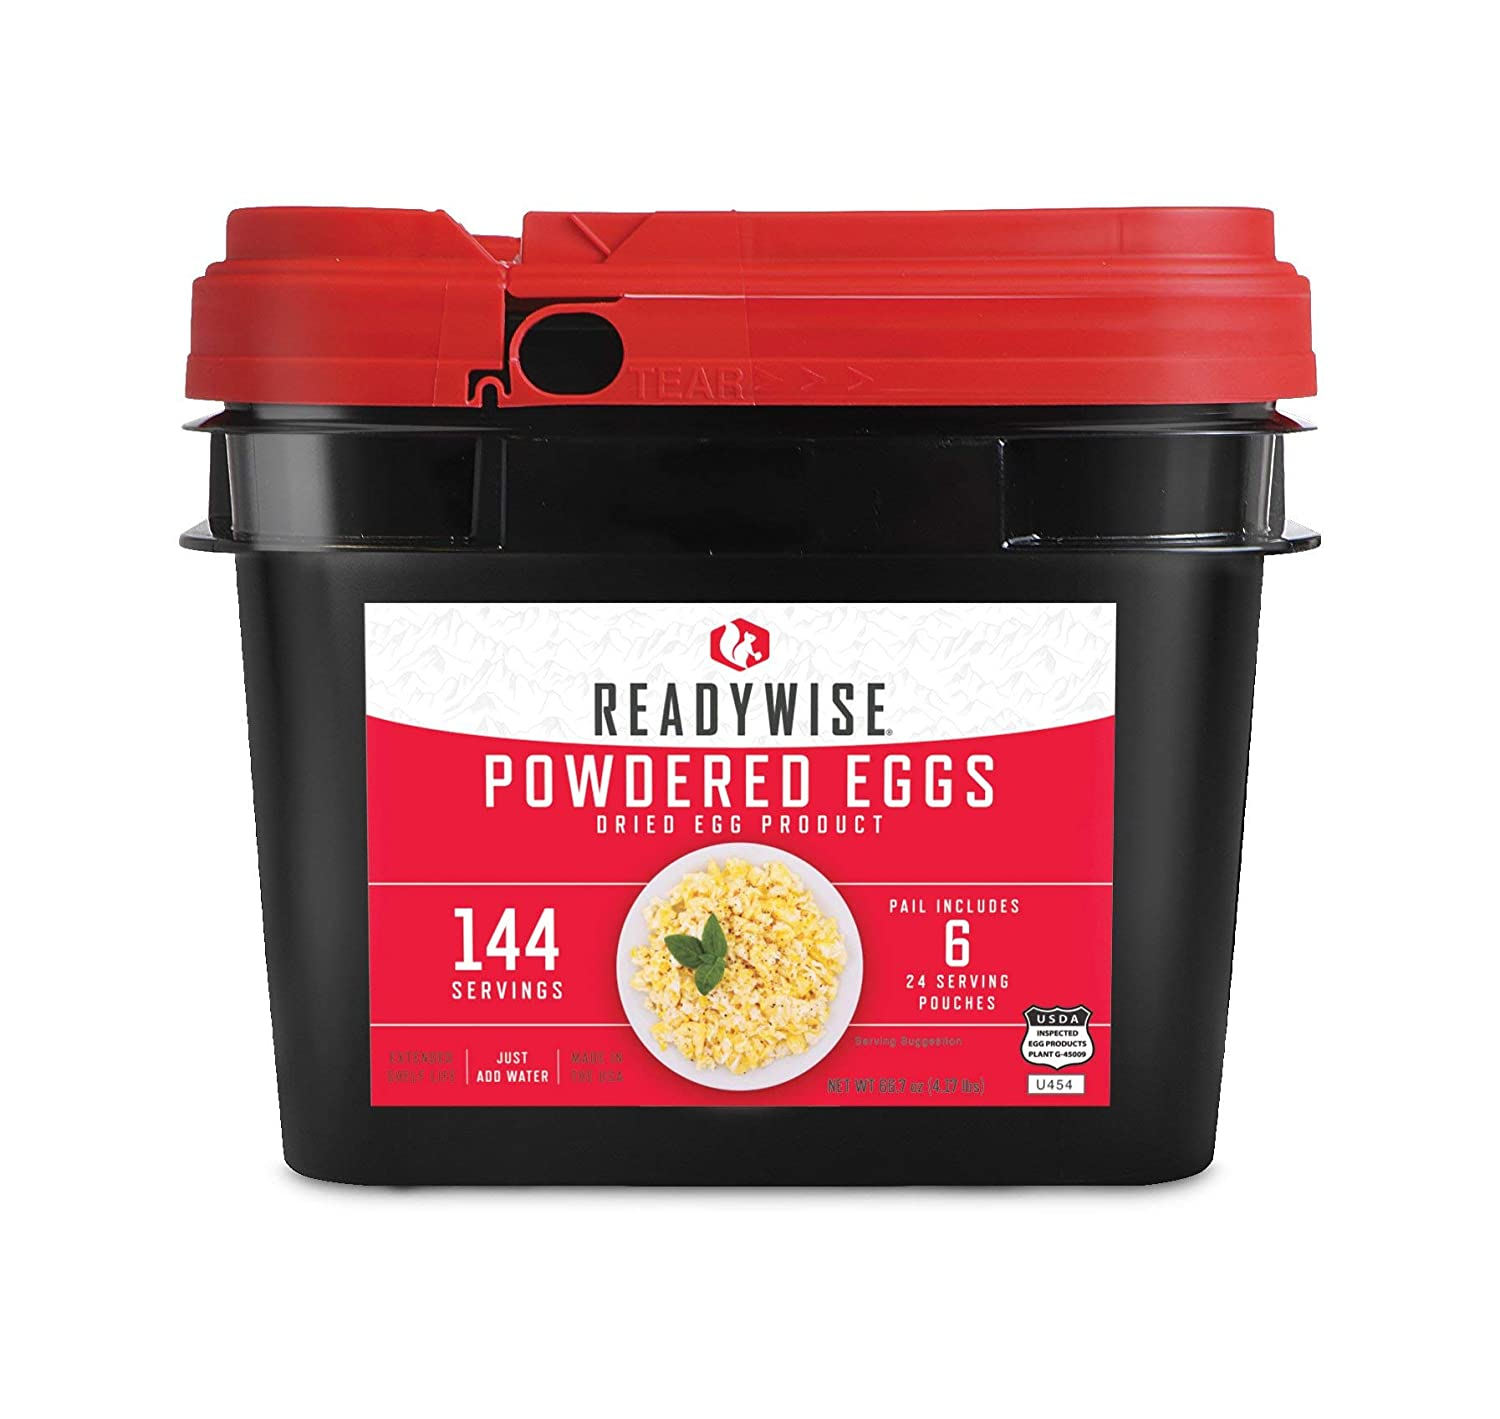 Wise Company, Emergency Food Supply, Powdered Egg Bucket, 144 Servings